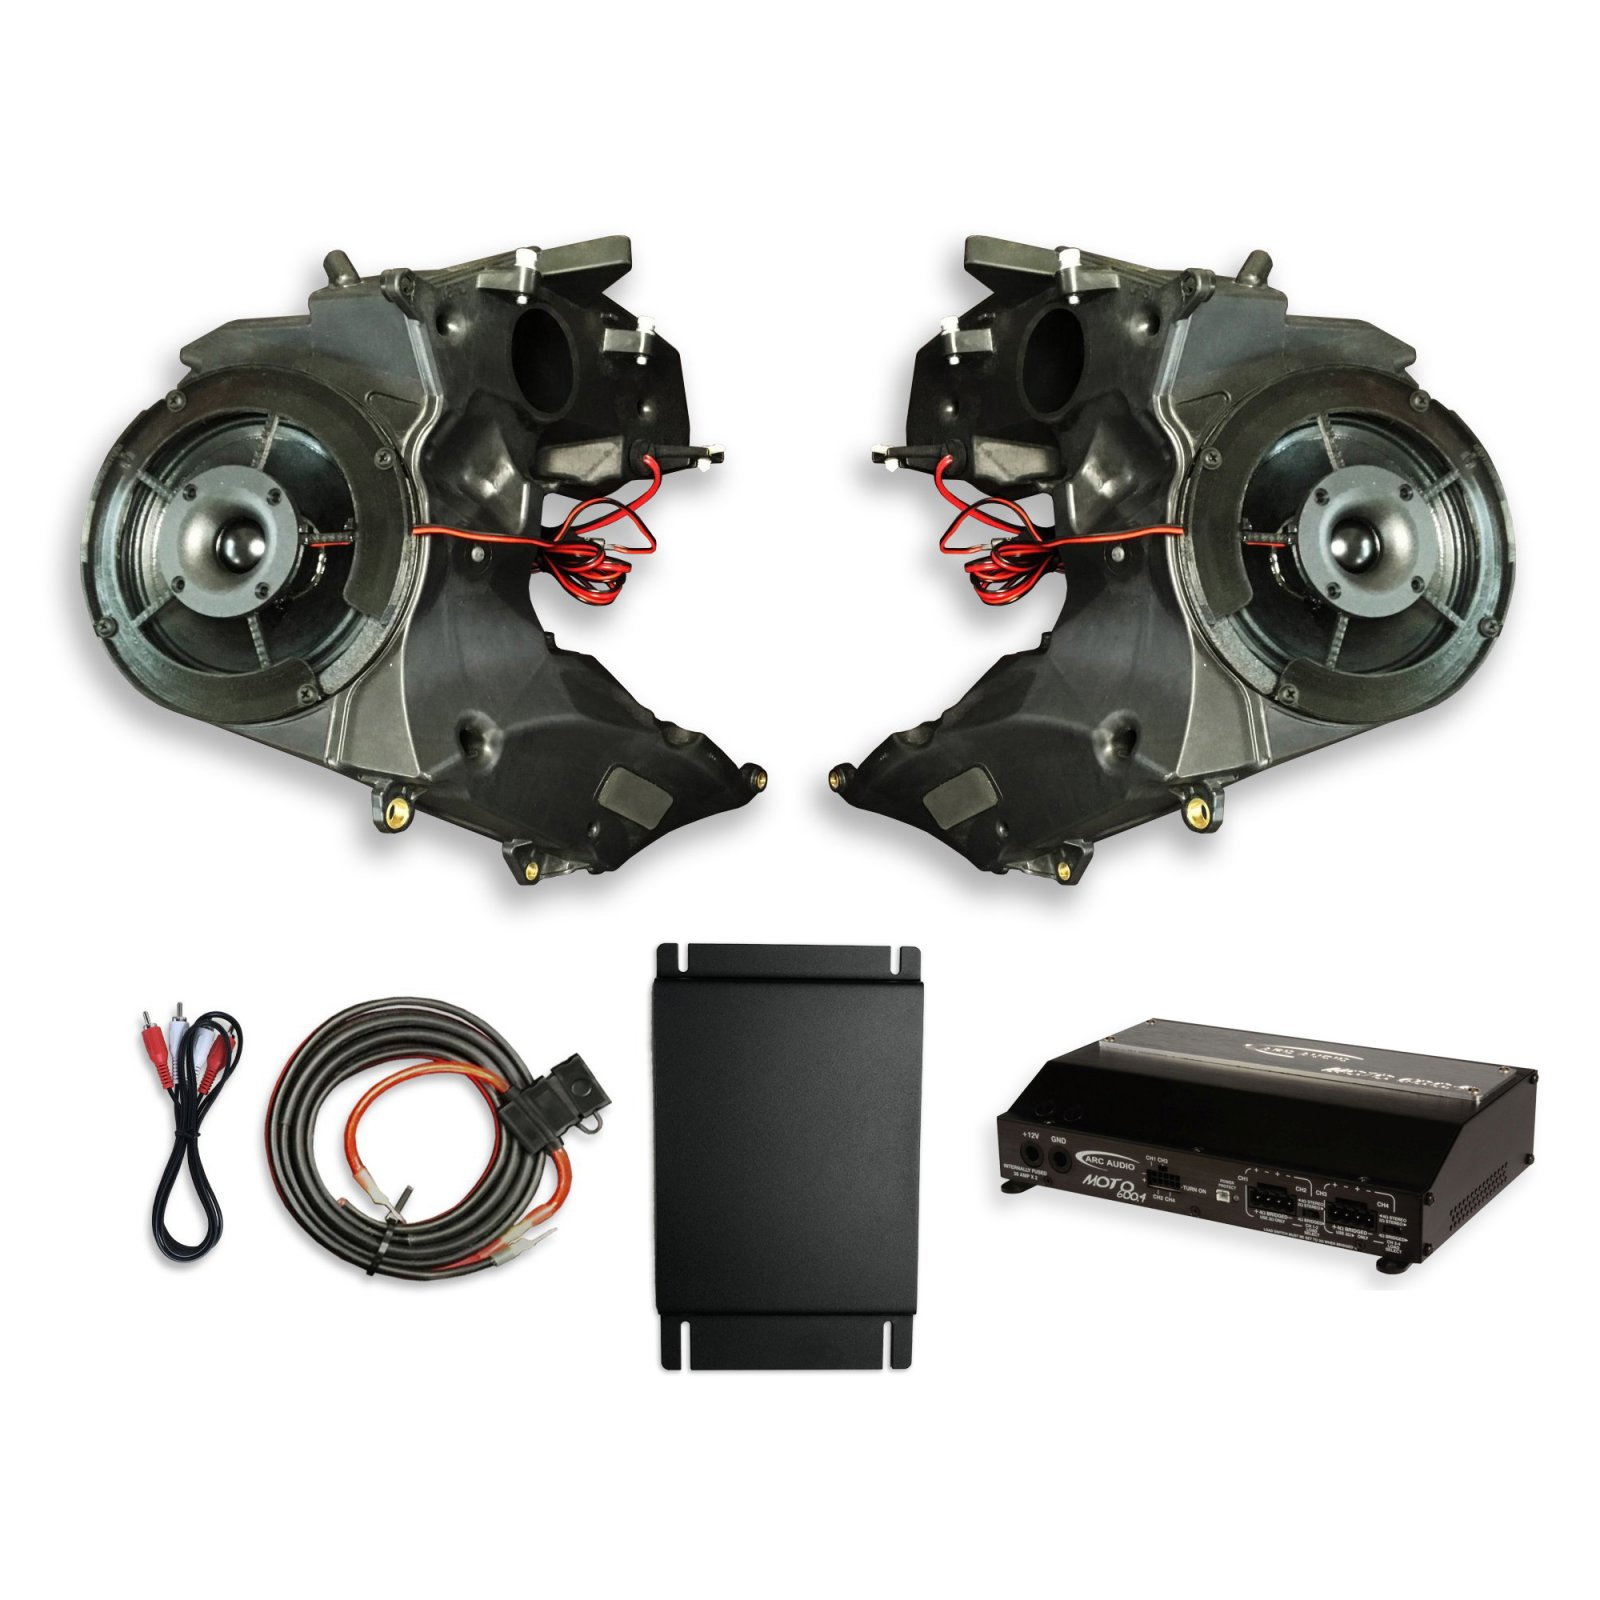 19-UP Road Glide SinisterSound Fairing System w/Arc Audio Moto720 and RG15